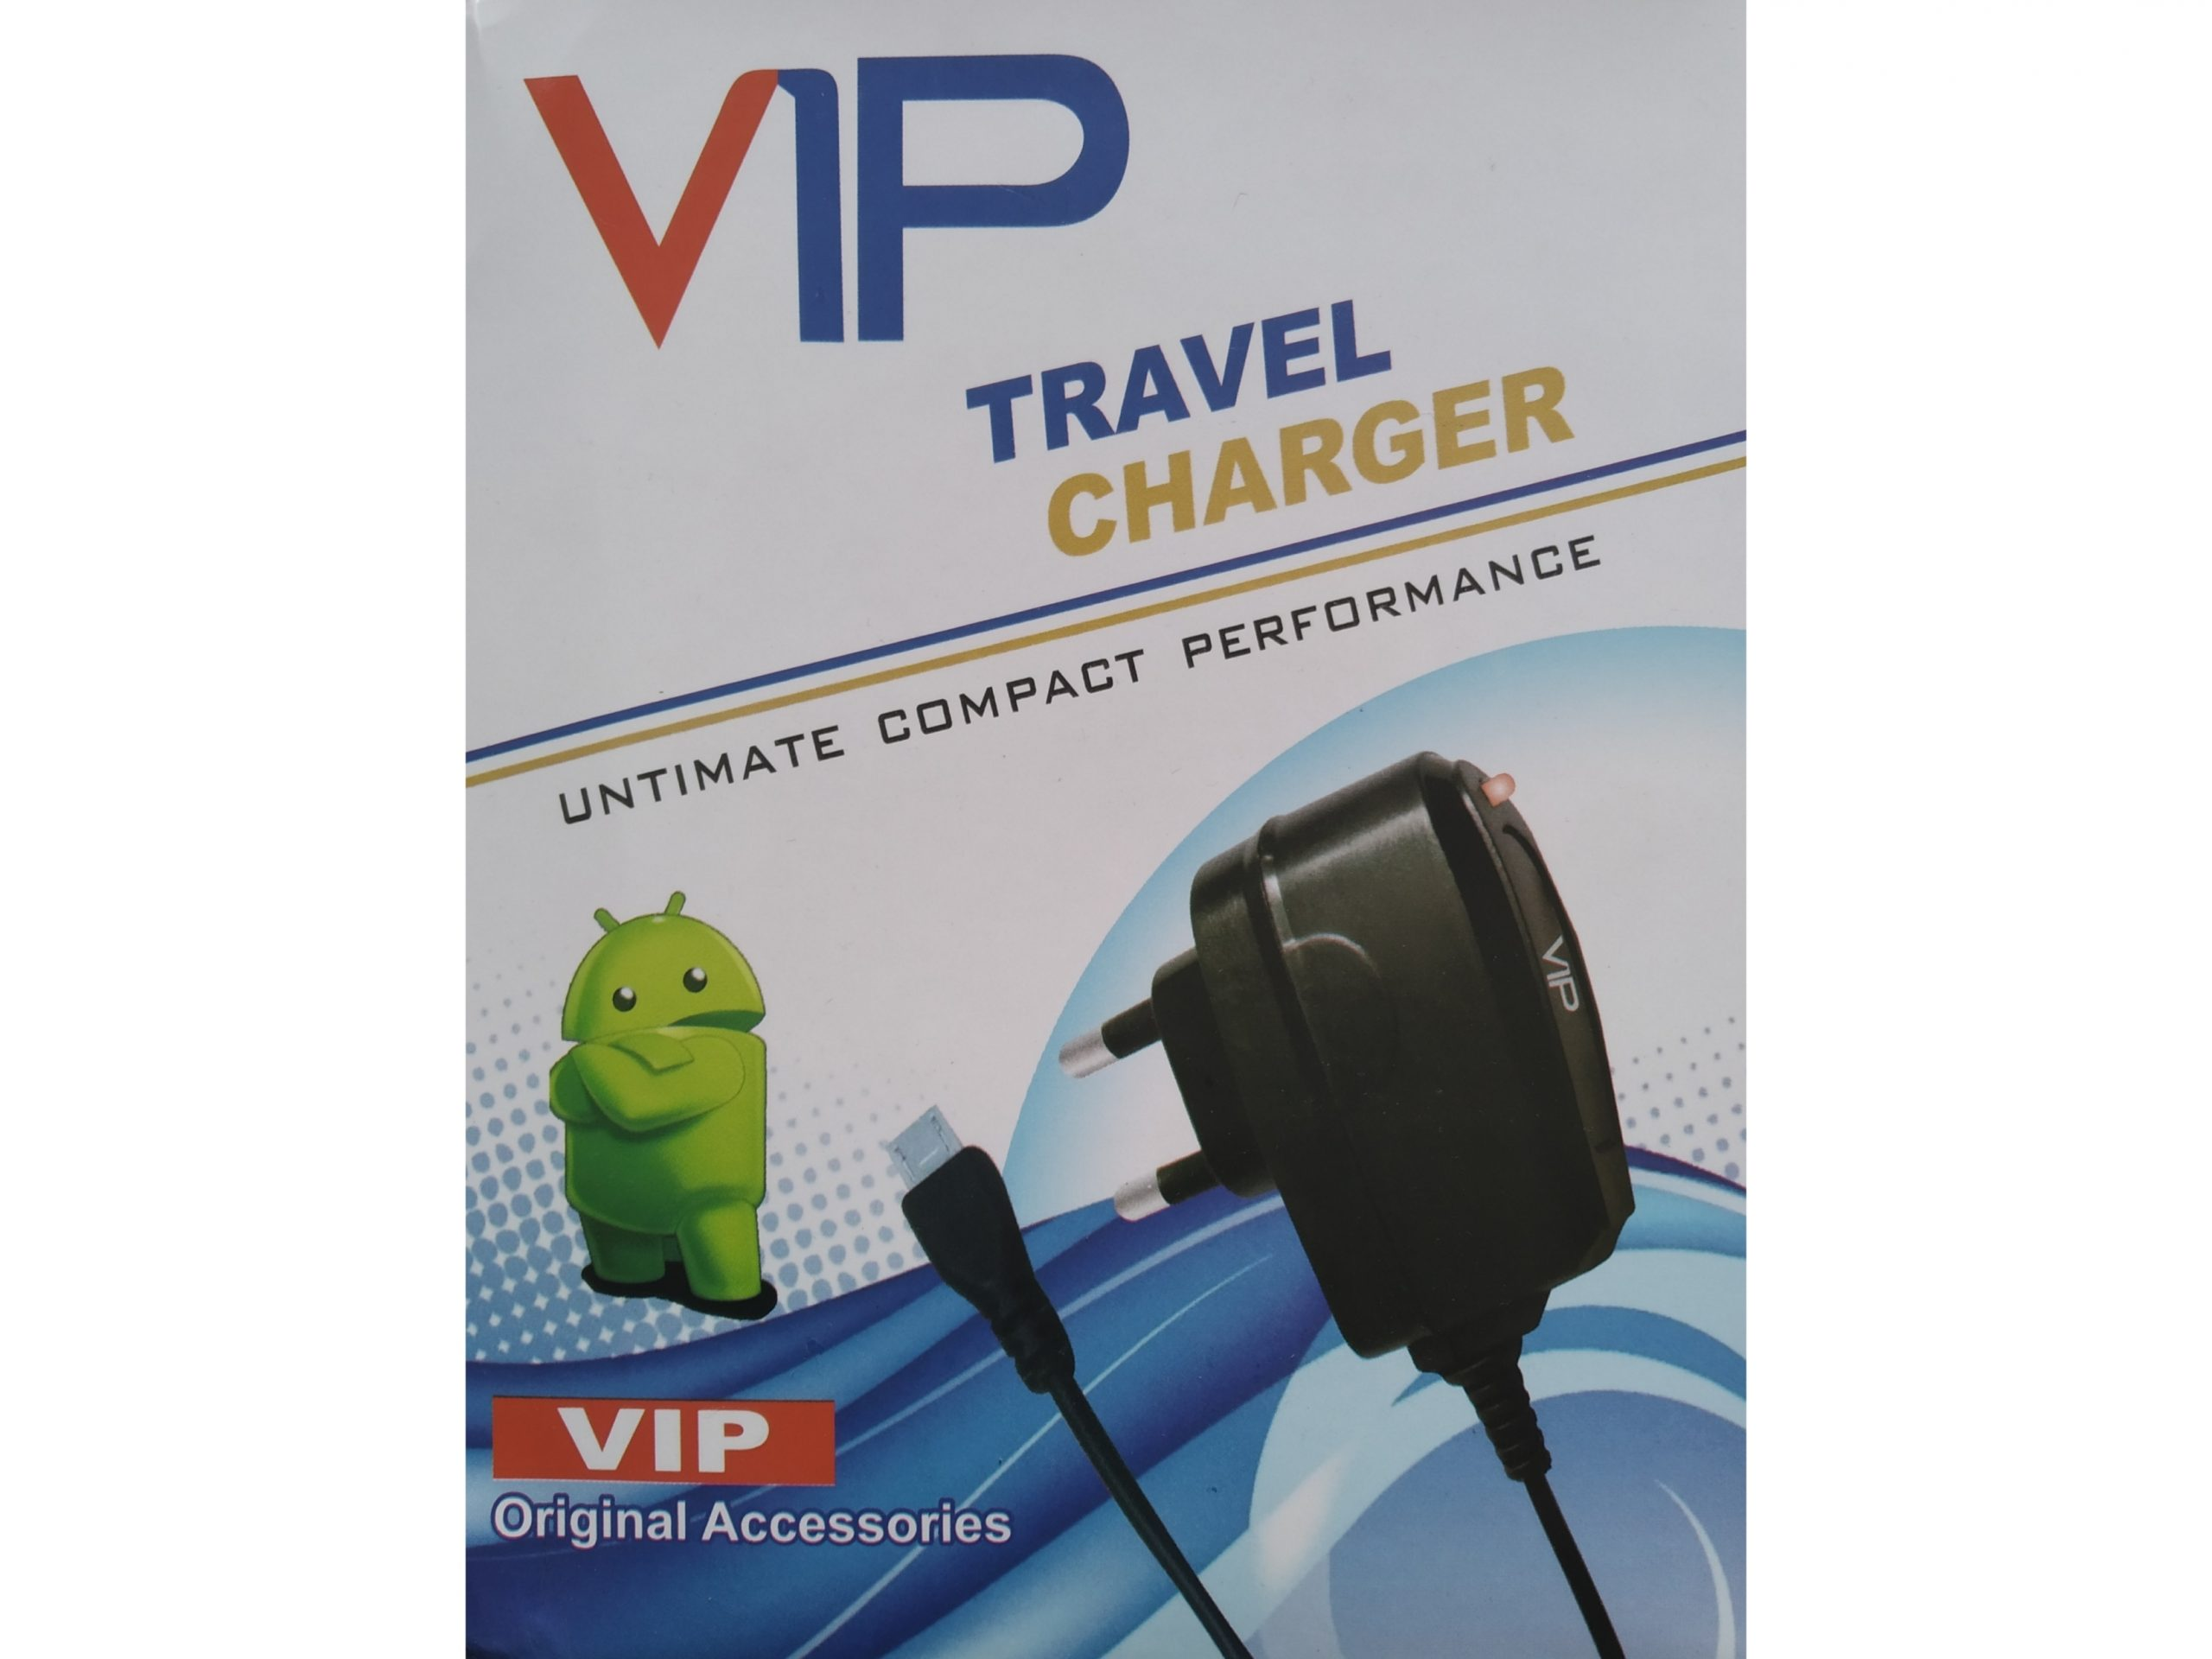 VIP Travel chargers